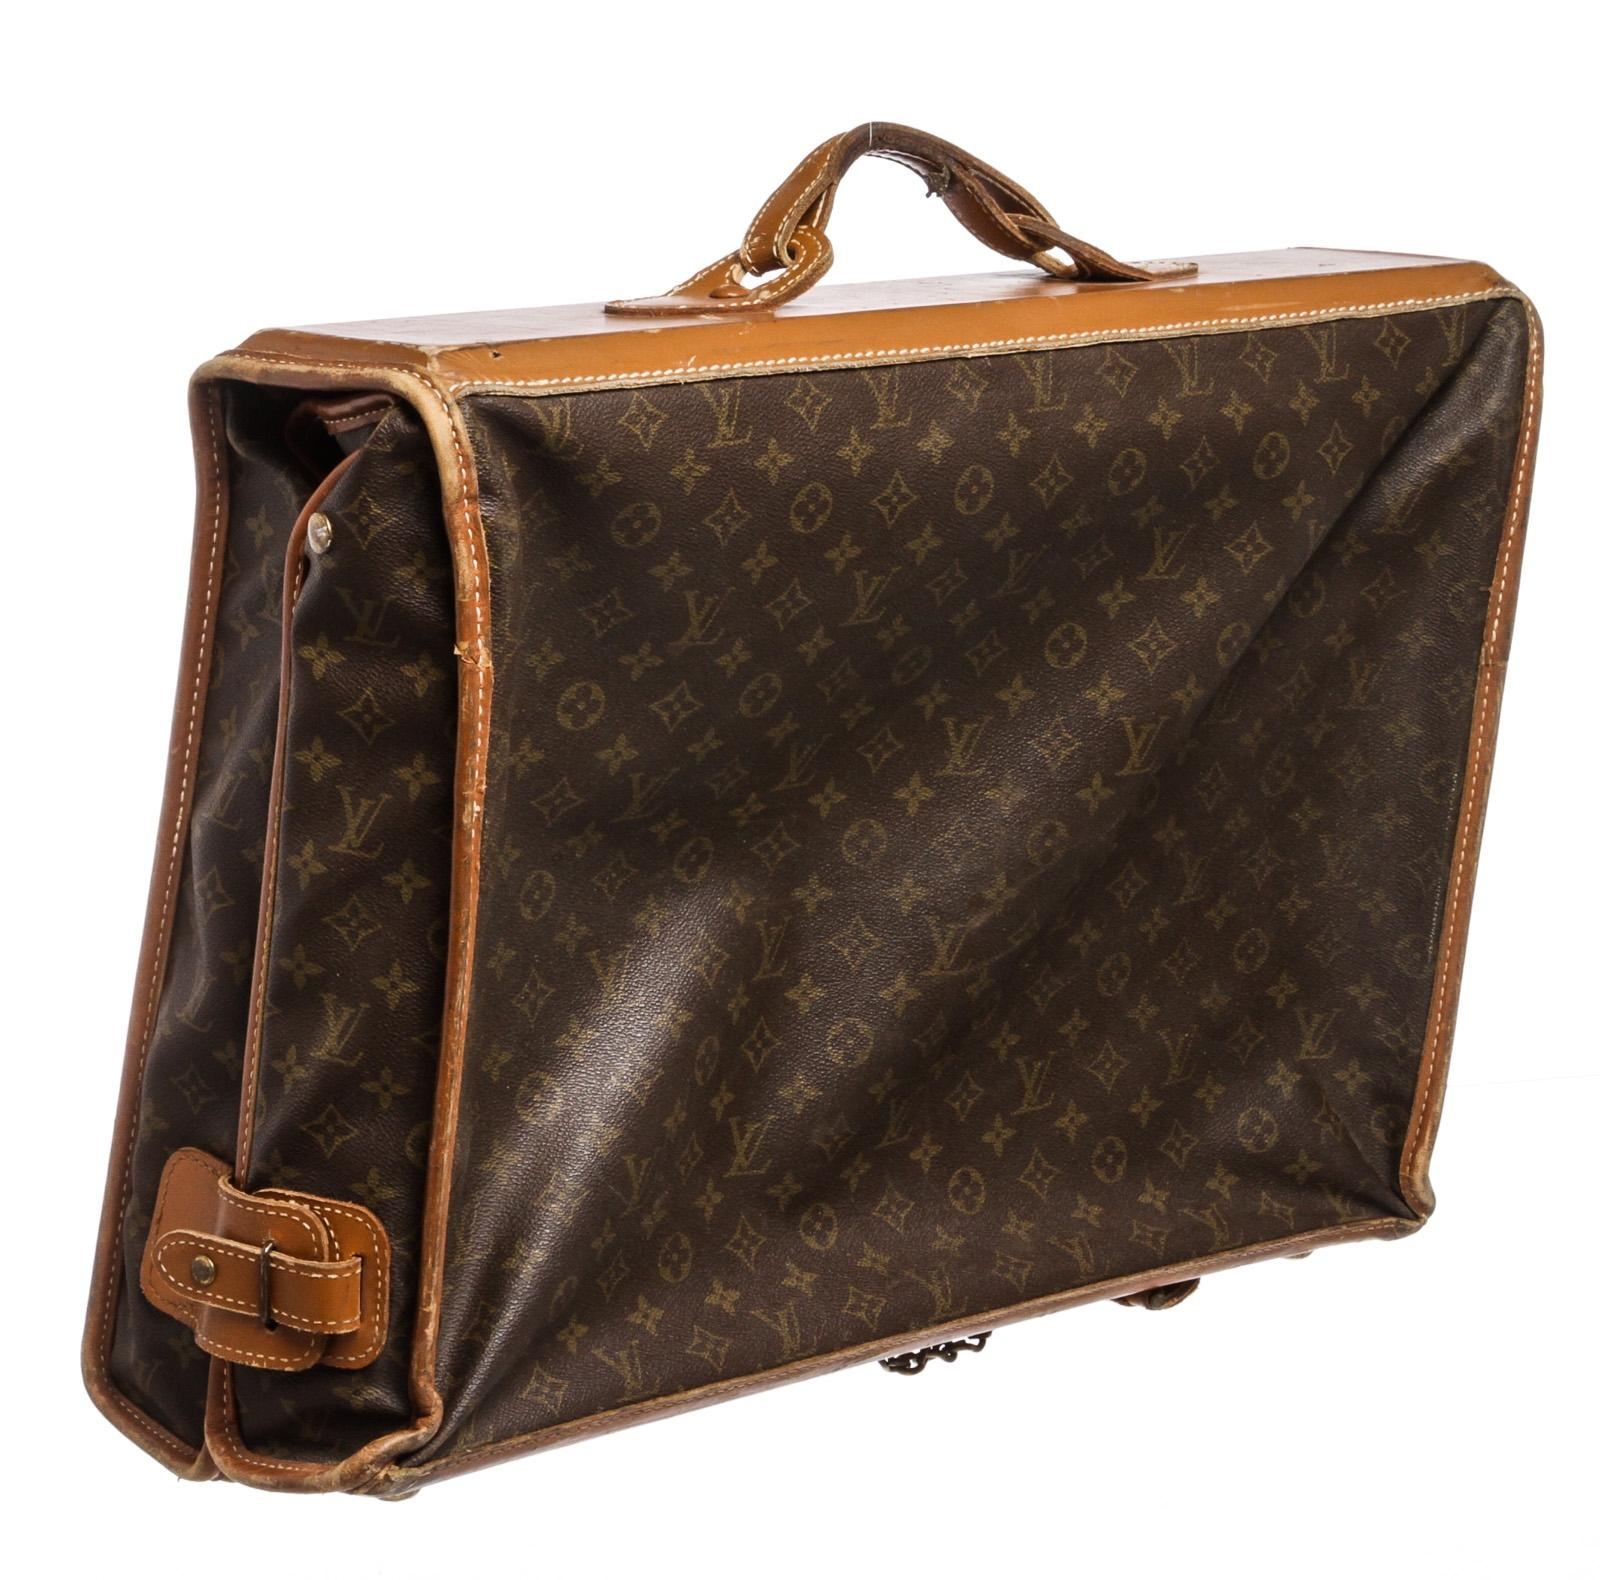 Louis Vuitton Vintage Weekend Travel Bag In Brown Monogram Canvas